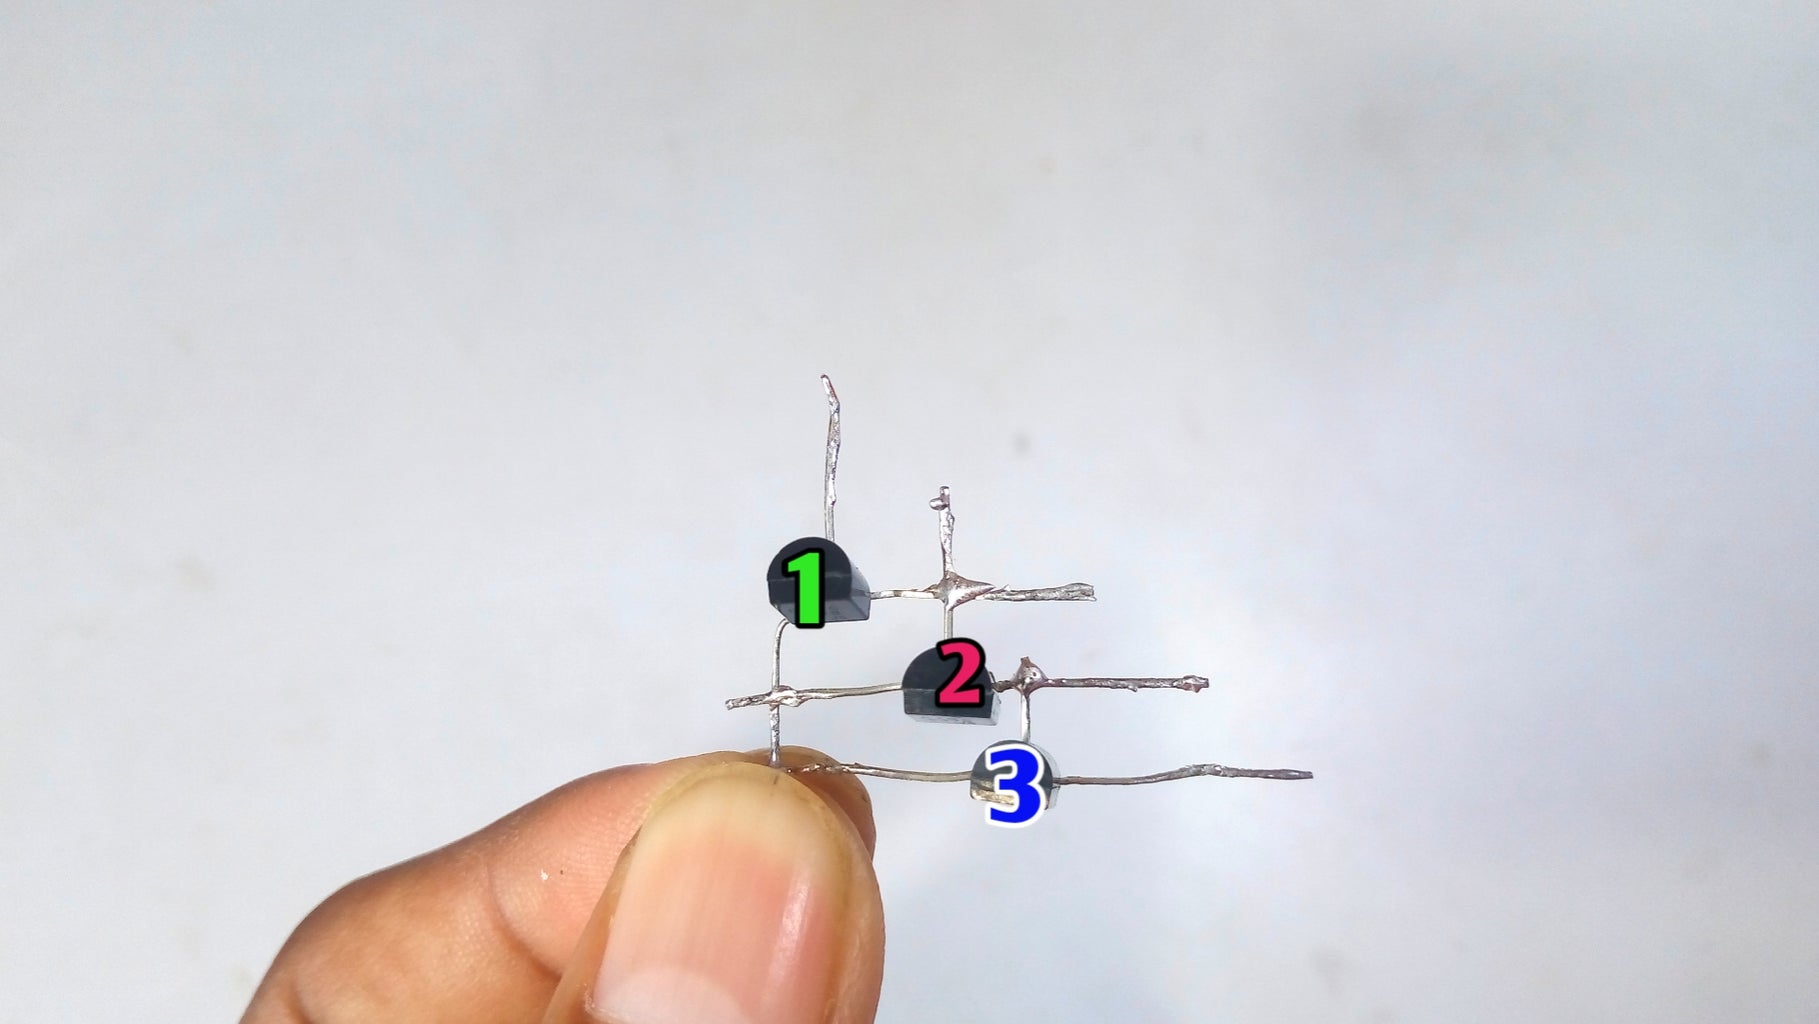 Next Connect All Three Transistors As Picture